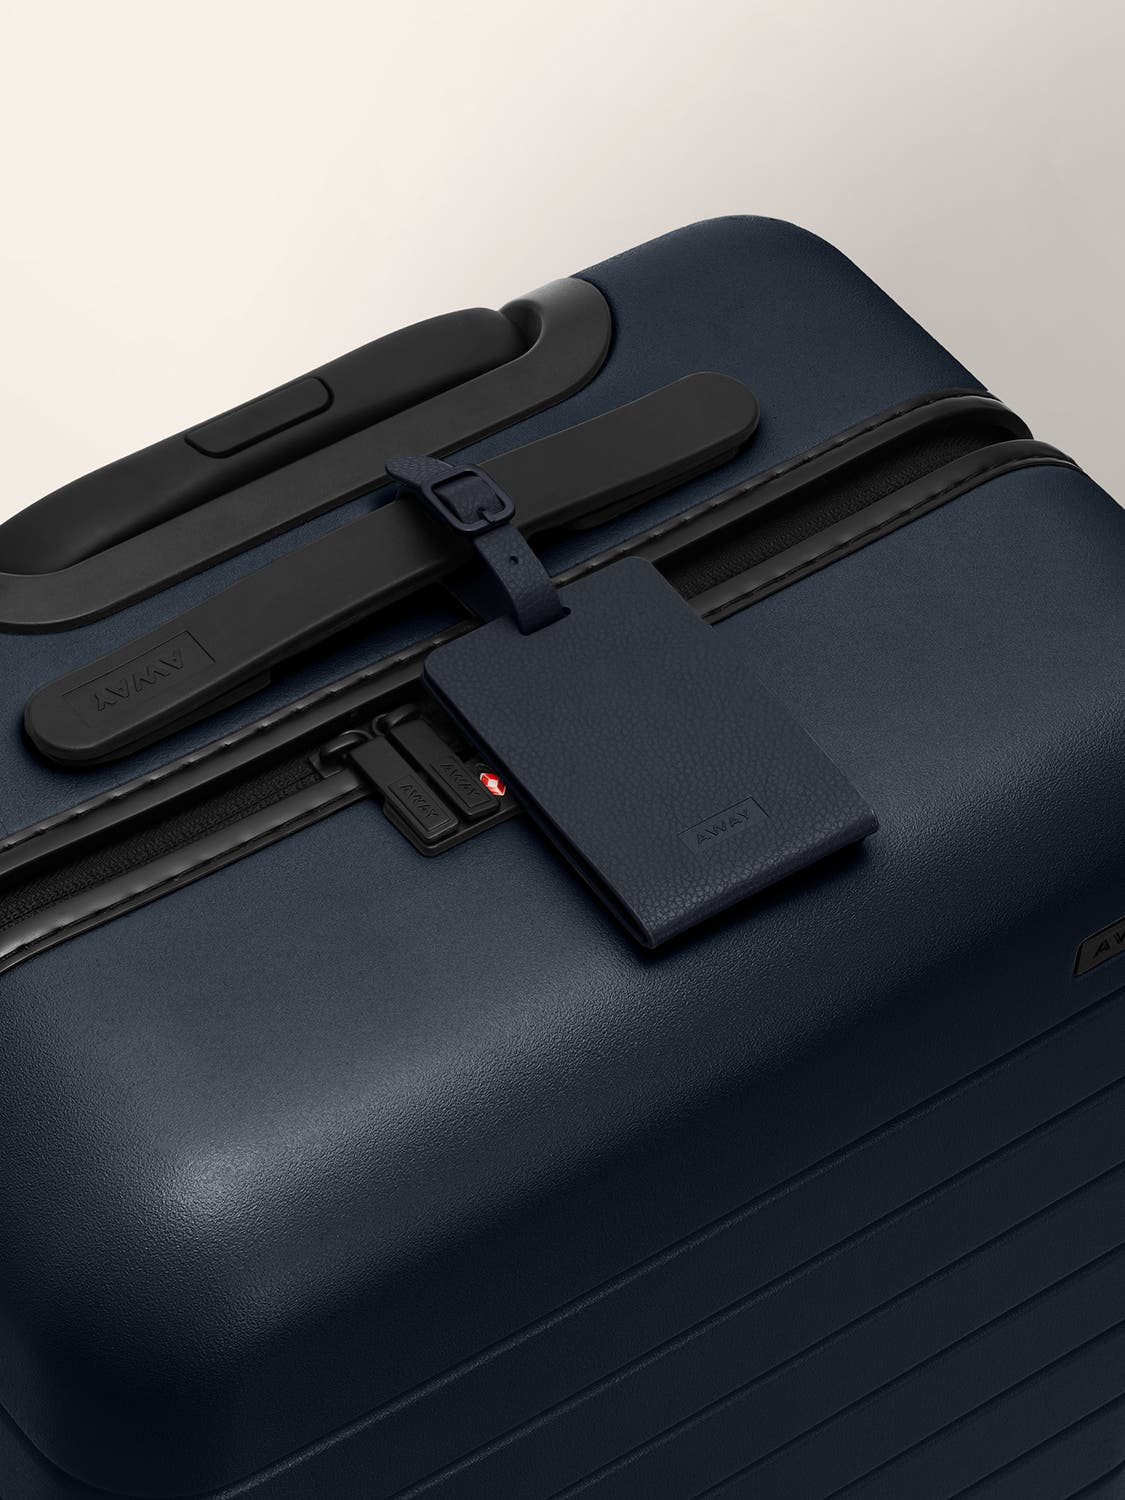 A navy color luggage tag strapped to a black handle on a navy suitcase.